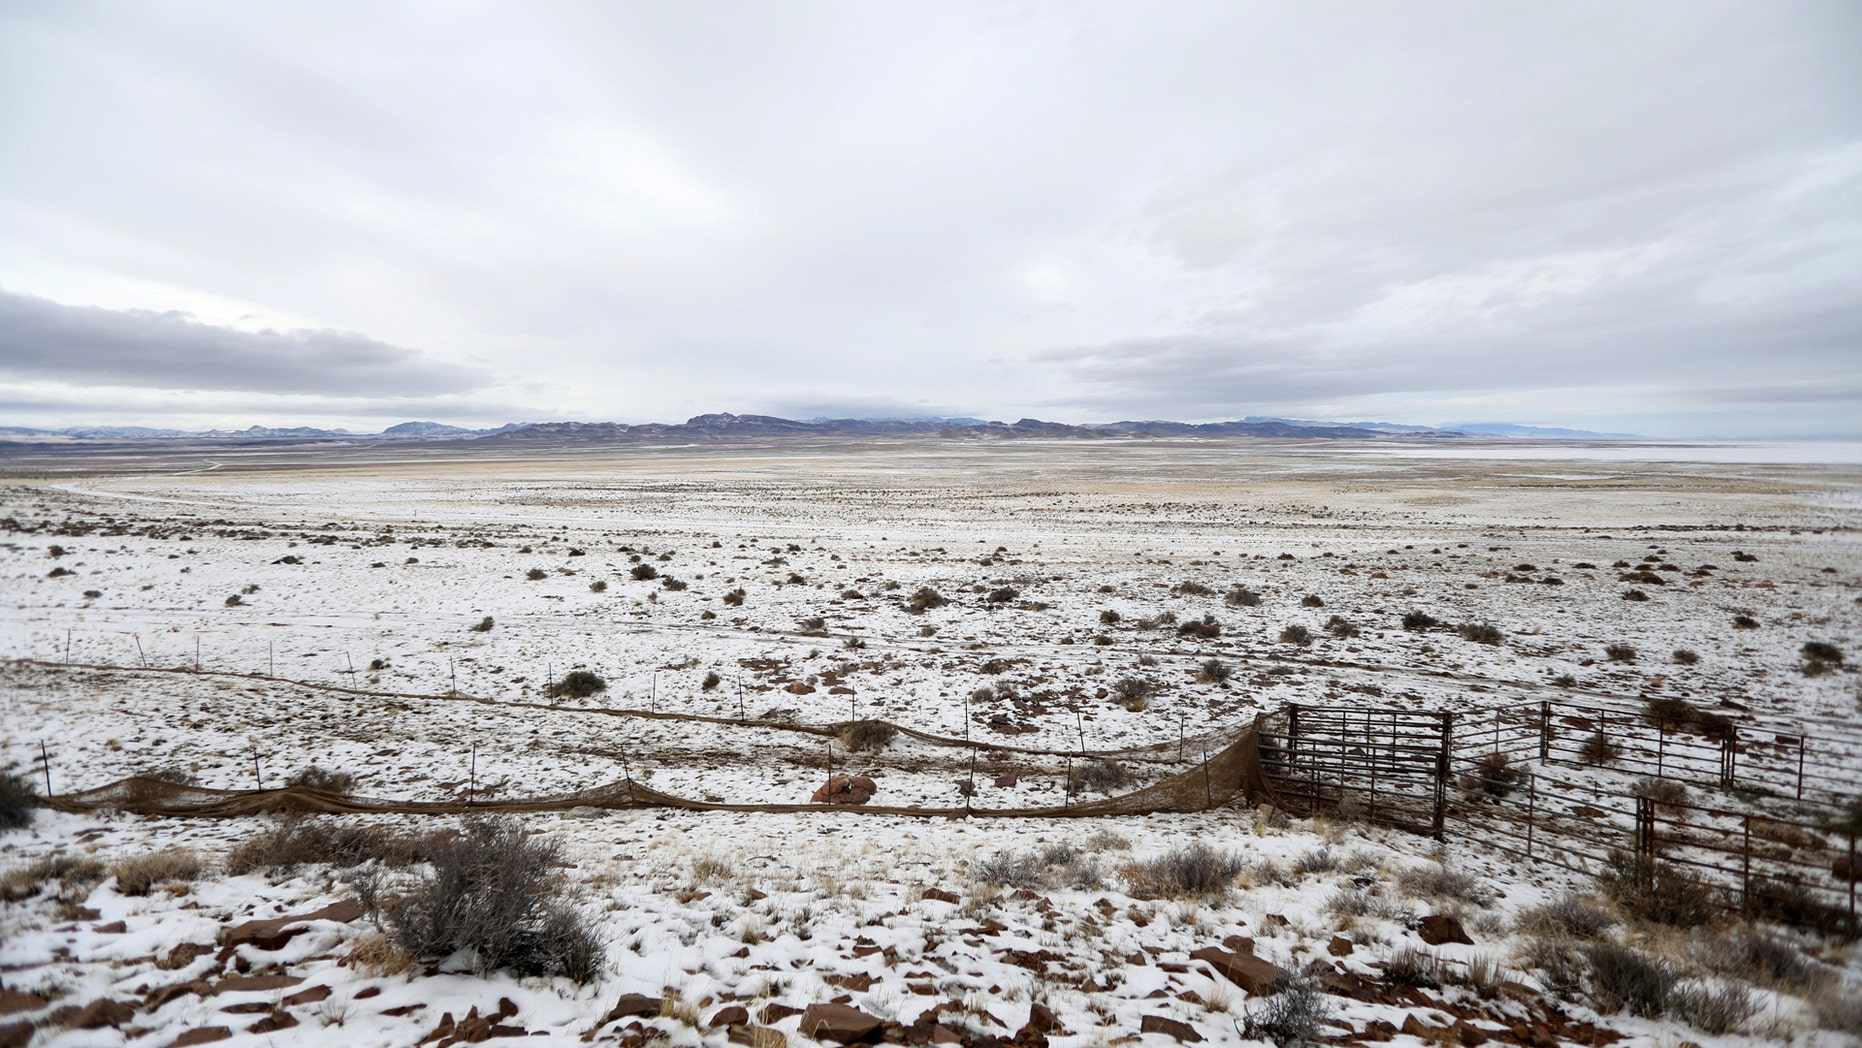 File photo - The trap corral is seen in the Wah Wah Valley where wild horses were herded during a Bureau of Land Management round-up outside Milford, Utah, U.S., Jan. 8, 2017. (REUTERS/Jim Urquhart)